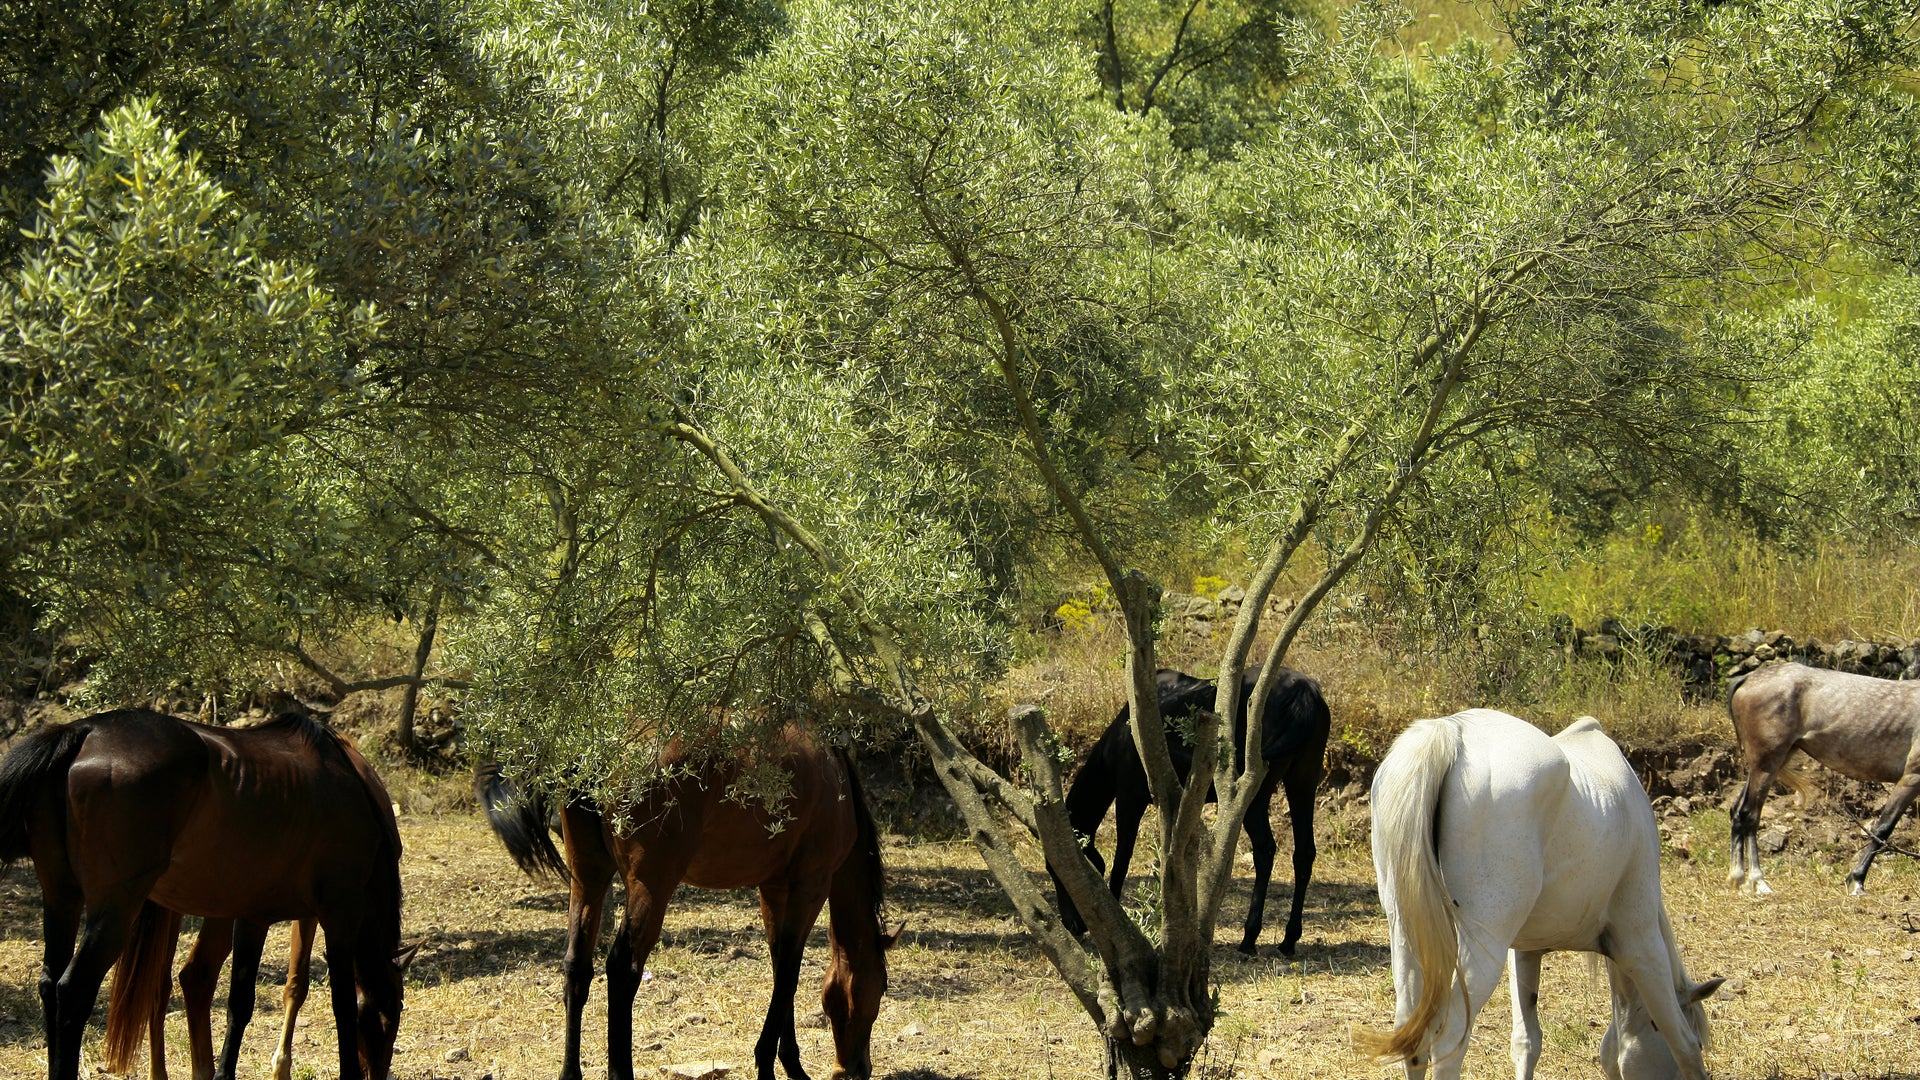 Horses grazing in the olive groves of Cortijo Espiritiu Santo